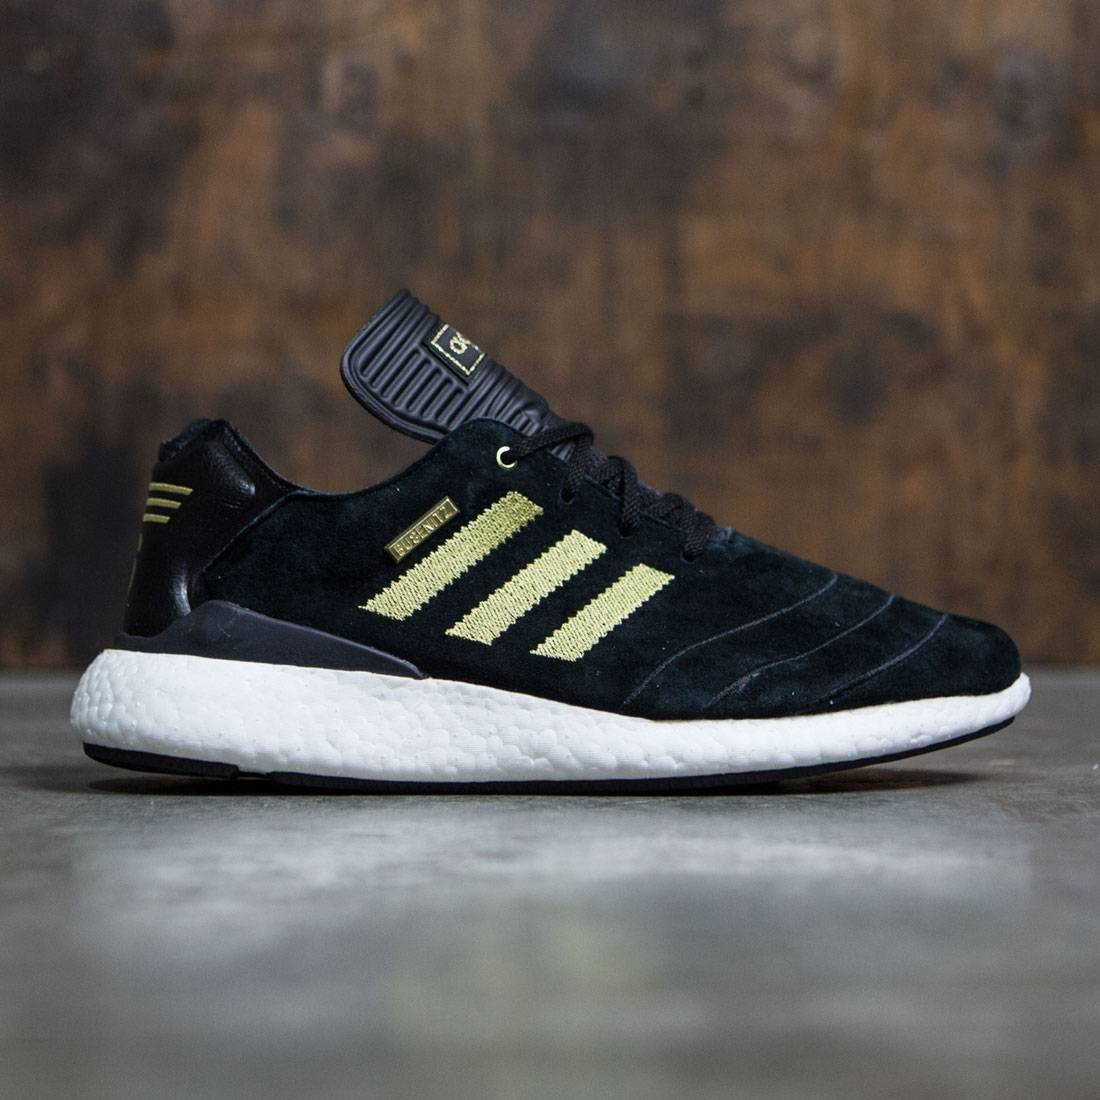 new product 6e4fa 10225 ... promo code for adidas men busenitz pure boost 10 year anniversary black  gold metallic footwear white